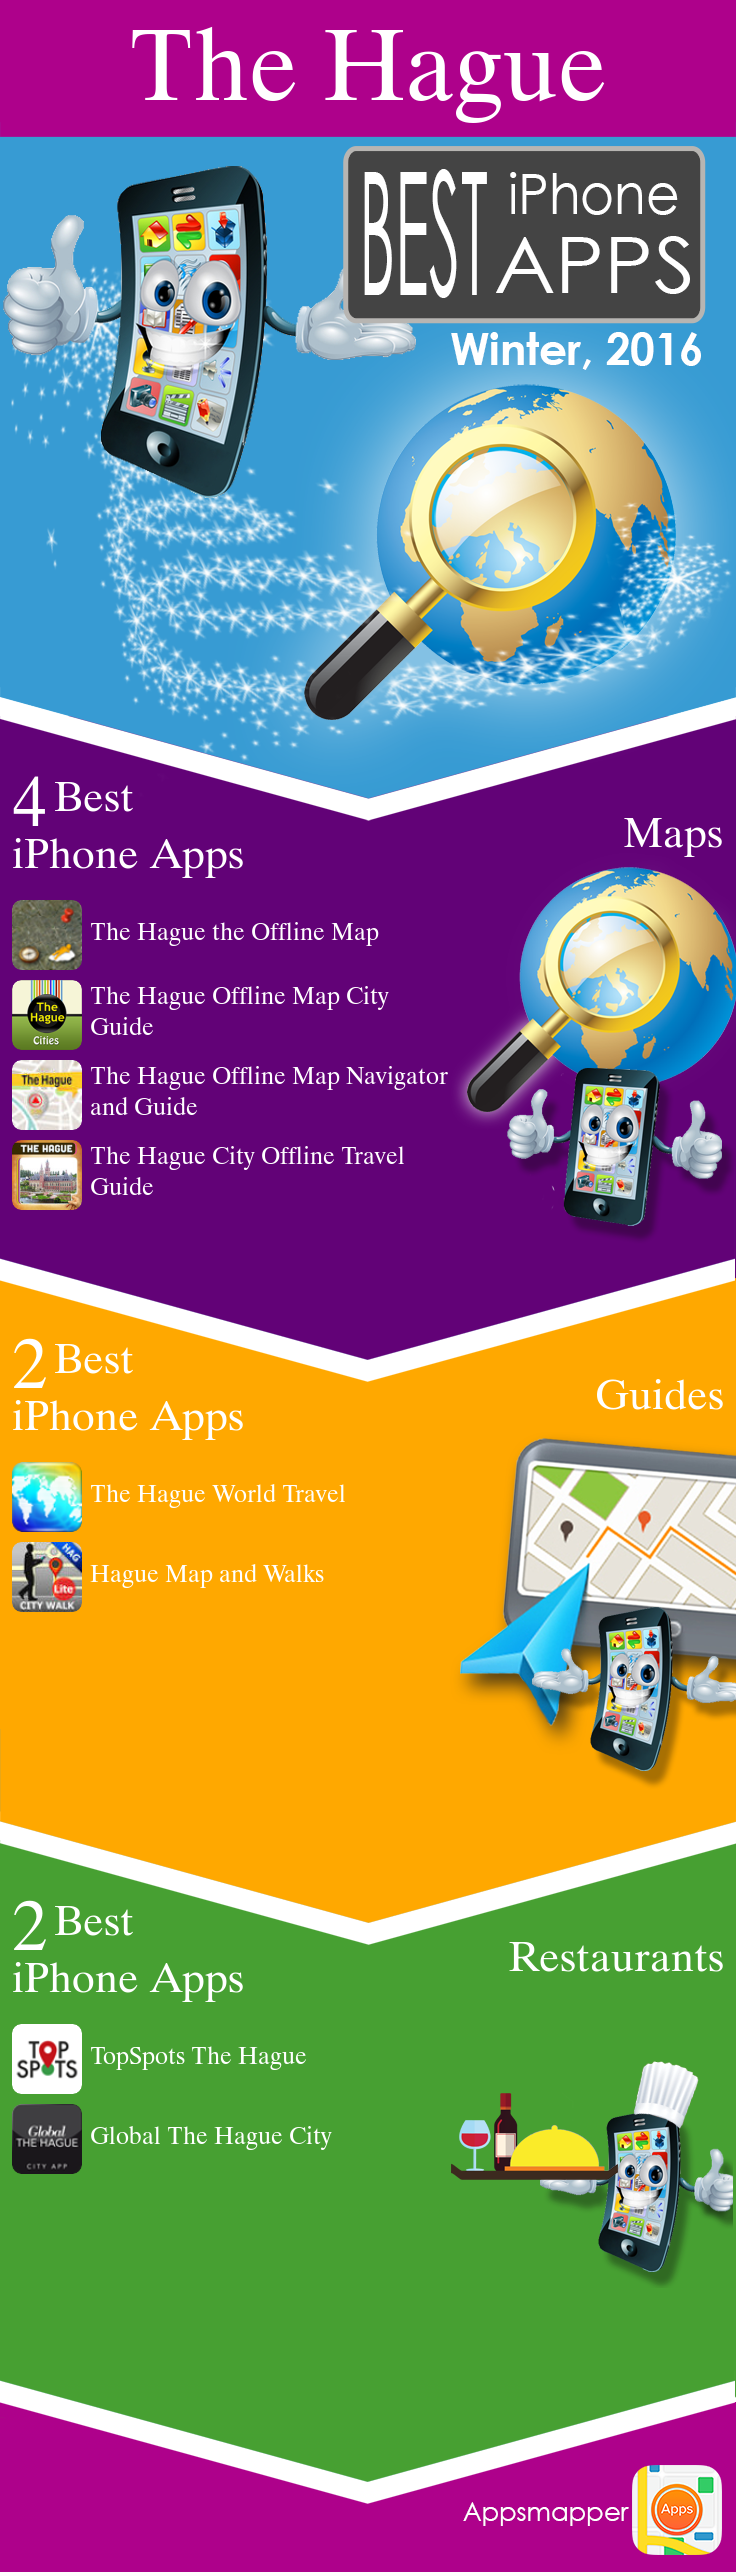 The Hague iPhone apps Travel Guides, Maps, Transportation